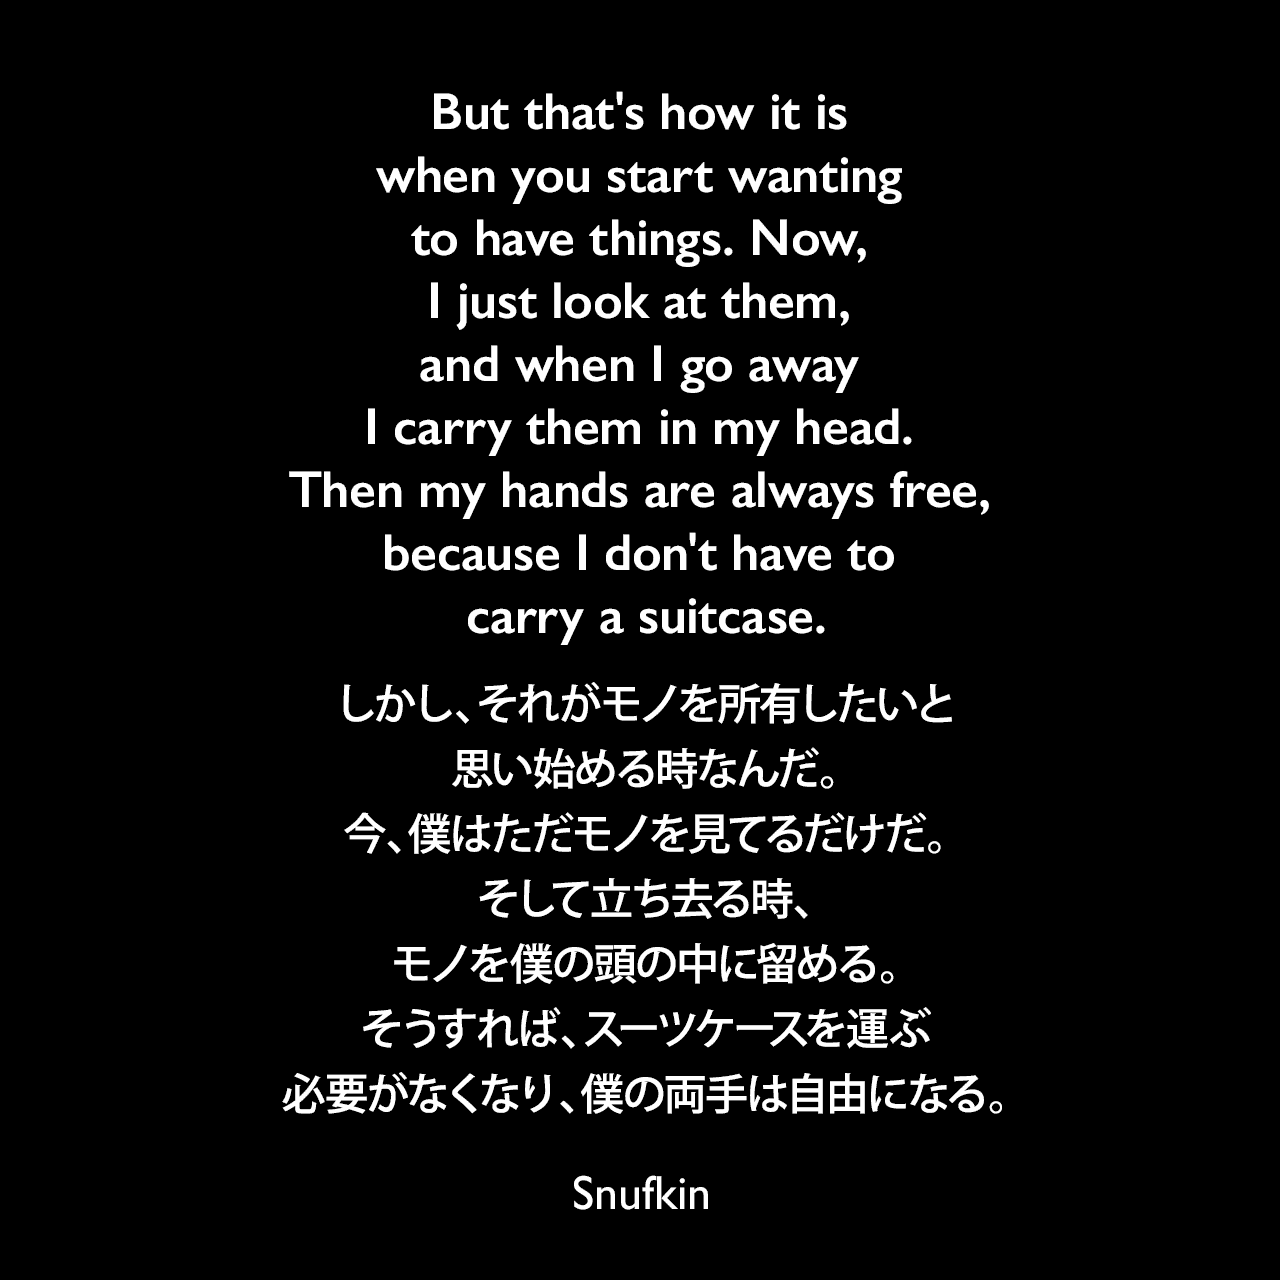 But that's how it is when you start wanting to have things. Now, I just look at them, and when I go away I carry them in my head. Then my hands are always free, because I don't have to carry a suitcase.しかし、それがモノを所有したいと思い始める時なんだ。今、僕はただモノを見てるだけだ。そして立ち去る時、モノを僕の頭の中に留める。そうすれば、スーツケースを運ぶ必要がなくなり、僕の両手は自由になる。- トーベ・ヤンソンによる本「ムーミン谷の彗星」よりSnufkin